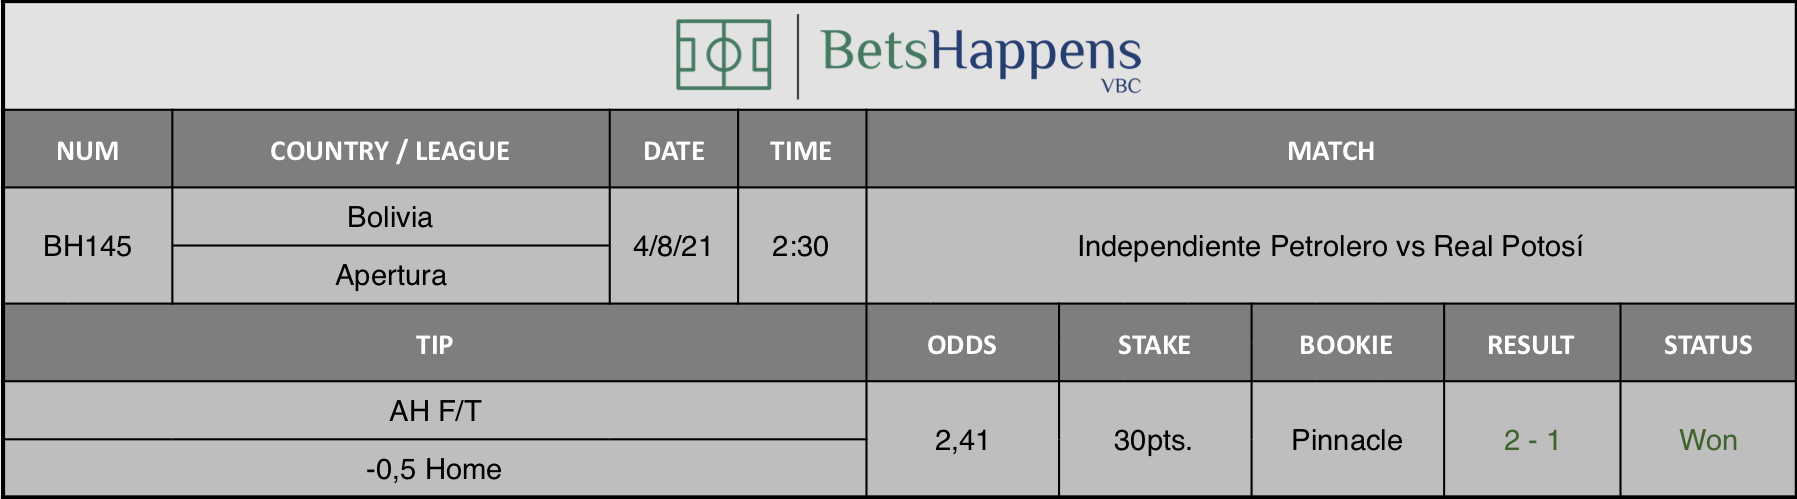 Results of our advice for the Independiente Petrolero vs Real Potosí match in which AH F/T -0,5 Home is recommended.